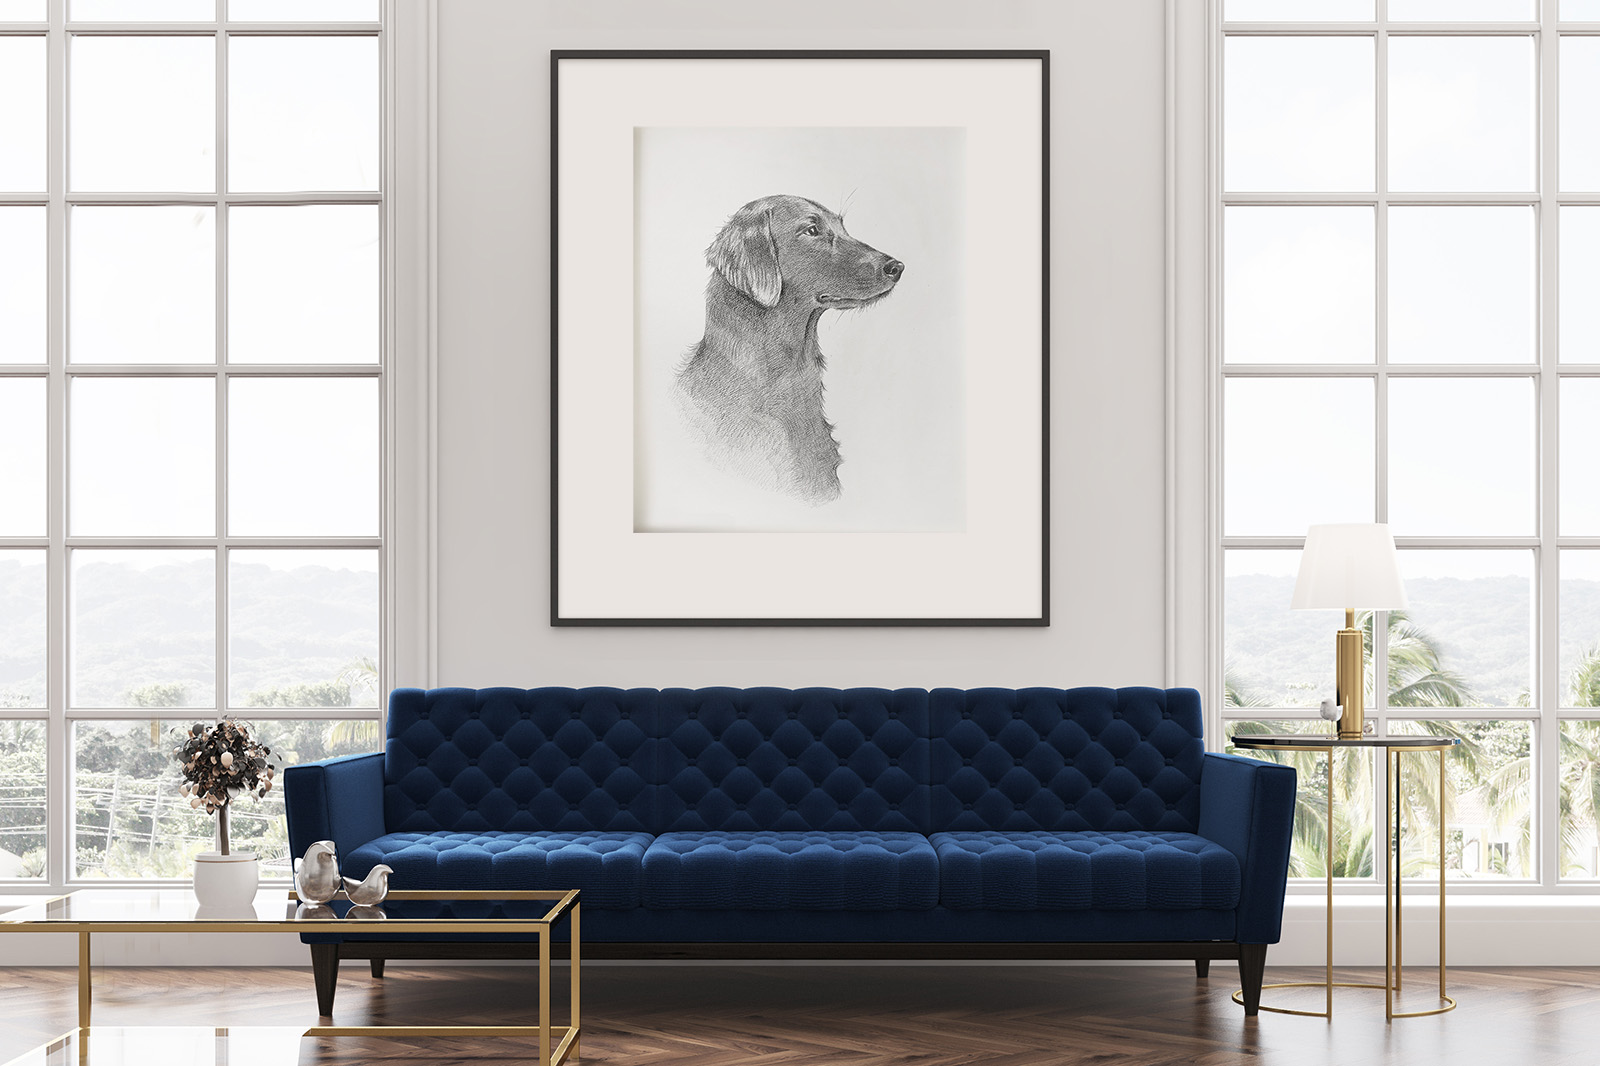 Atlanta Weiss, Portrait of a Dog in Interriour - drawing framed